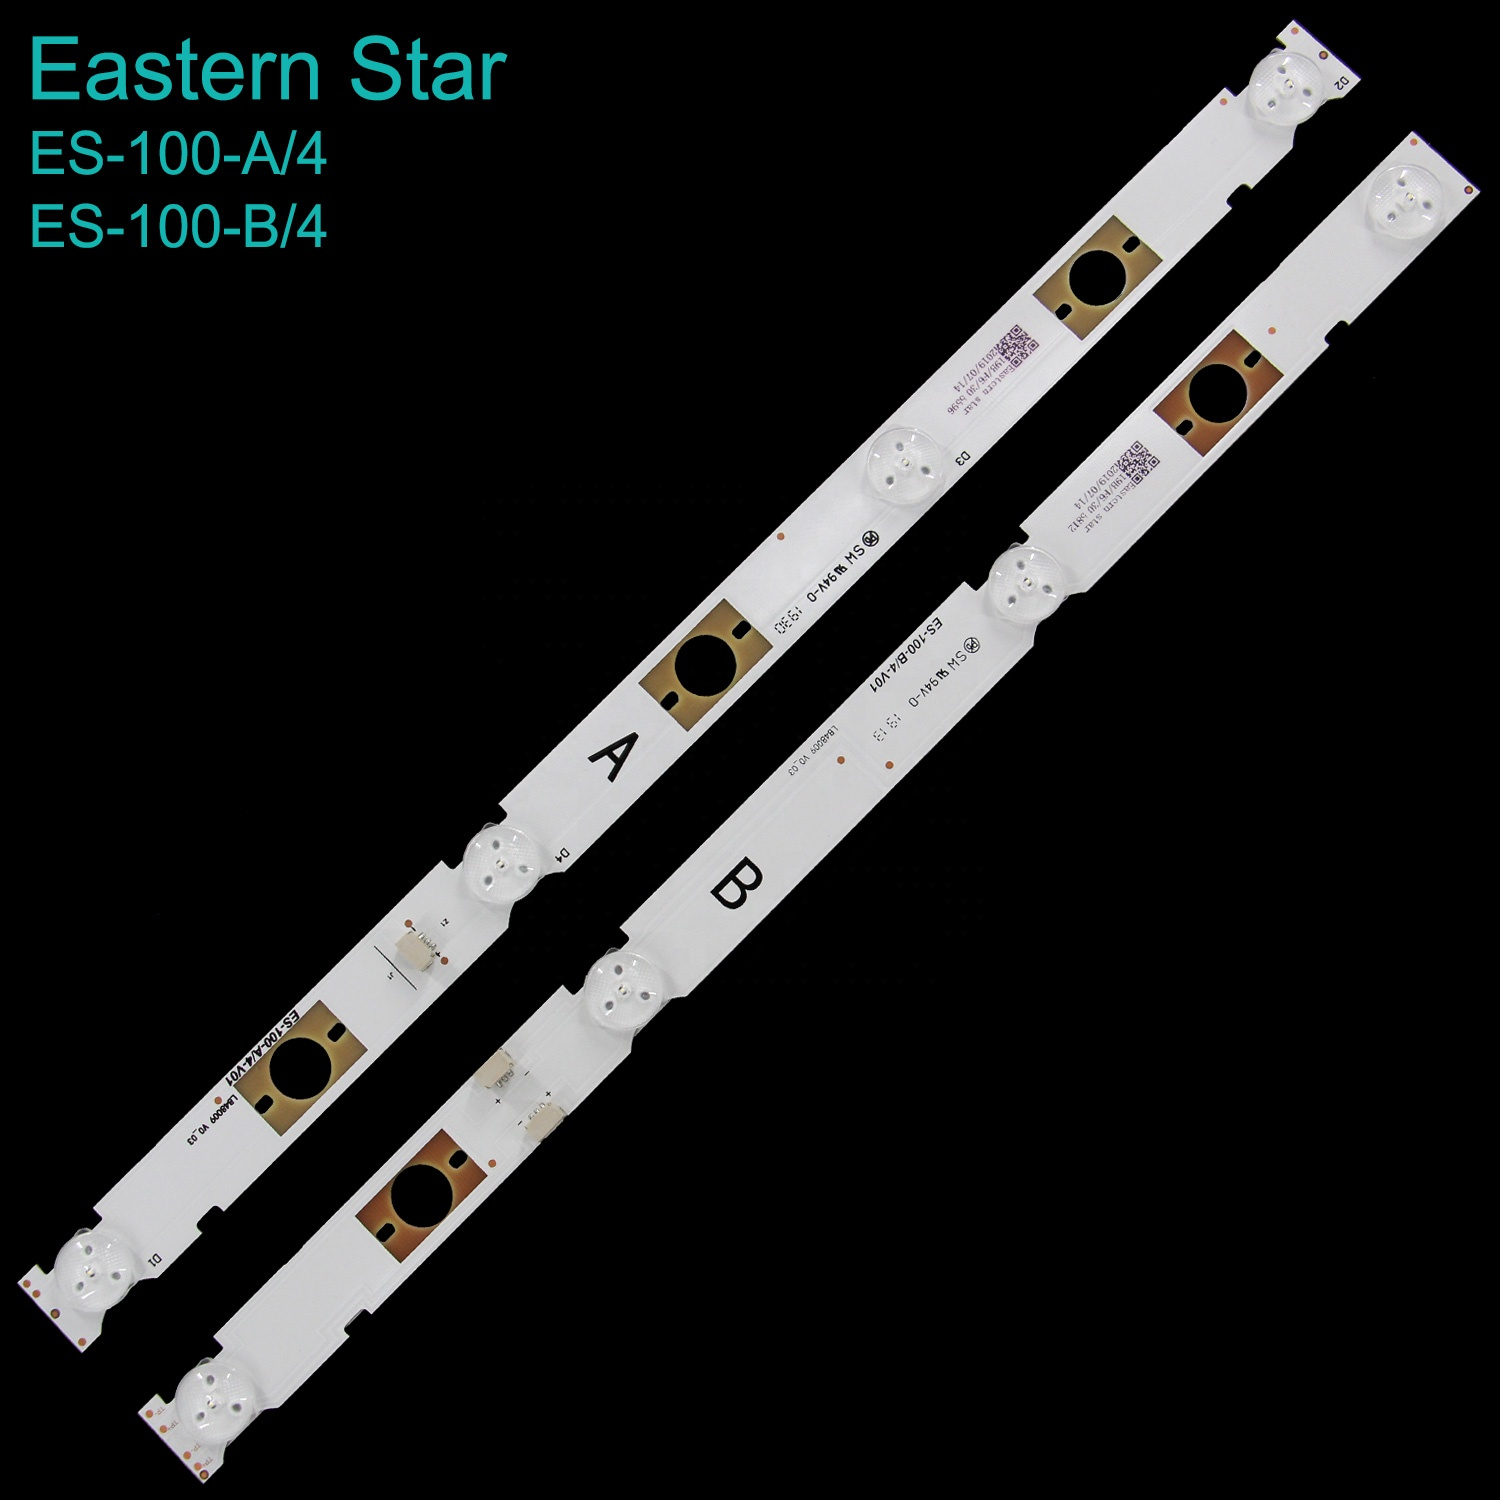 ES-100 LB48009 V0_03/<strong>V1</strong>_04 backlight led strip 48inch WD A+B <strong>4</strong>+4LEDs use for SONY KDL48W650D